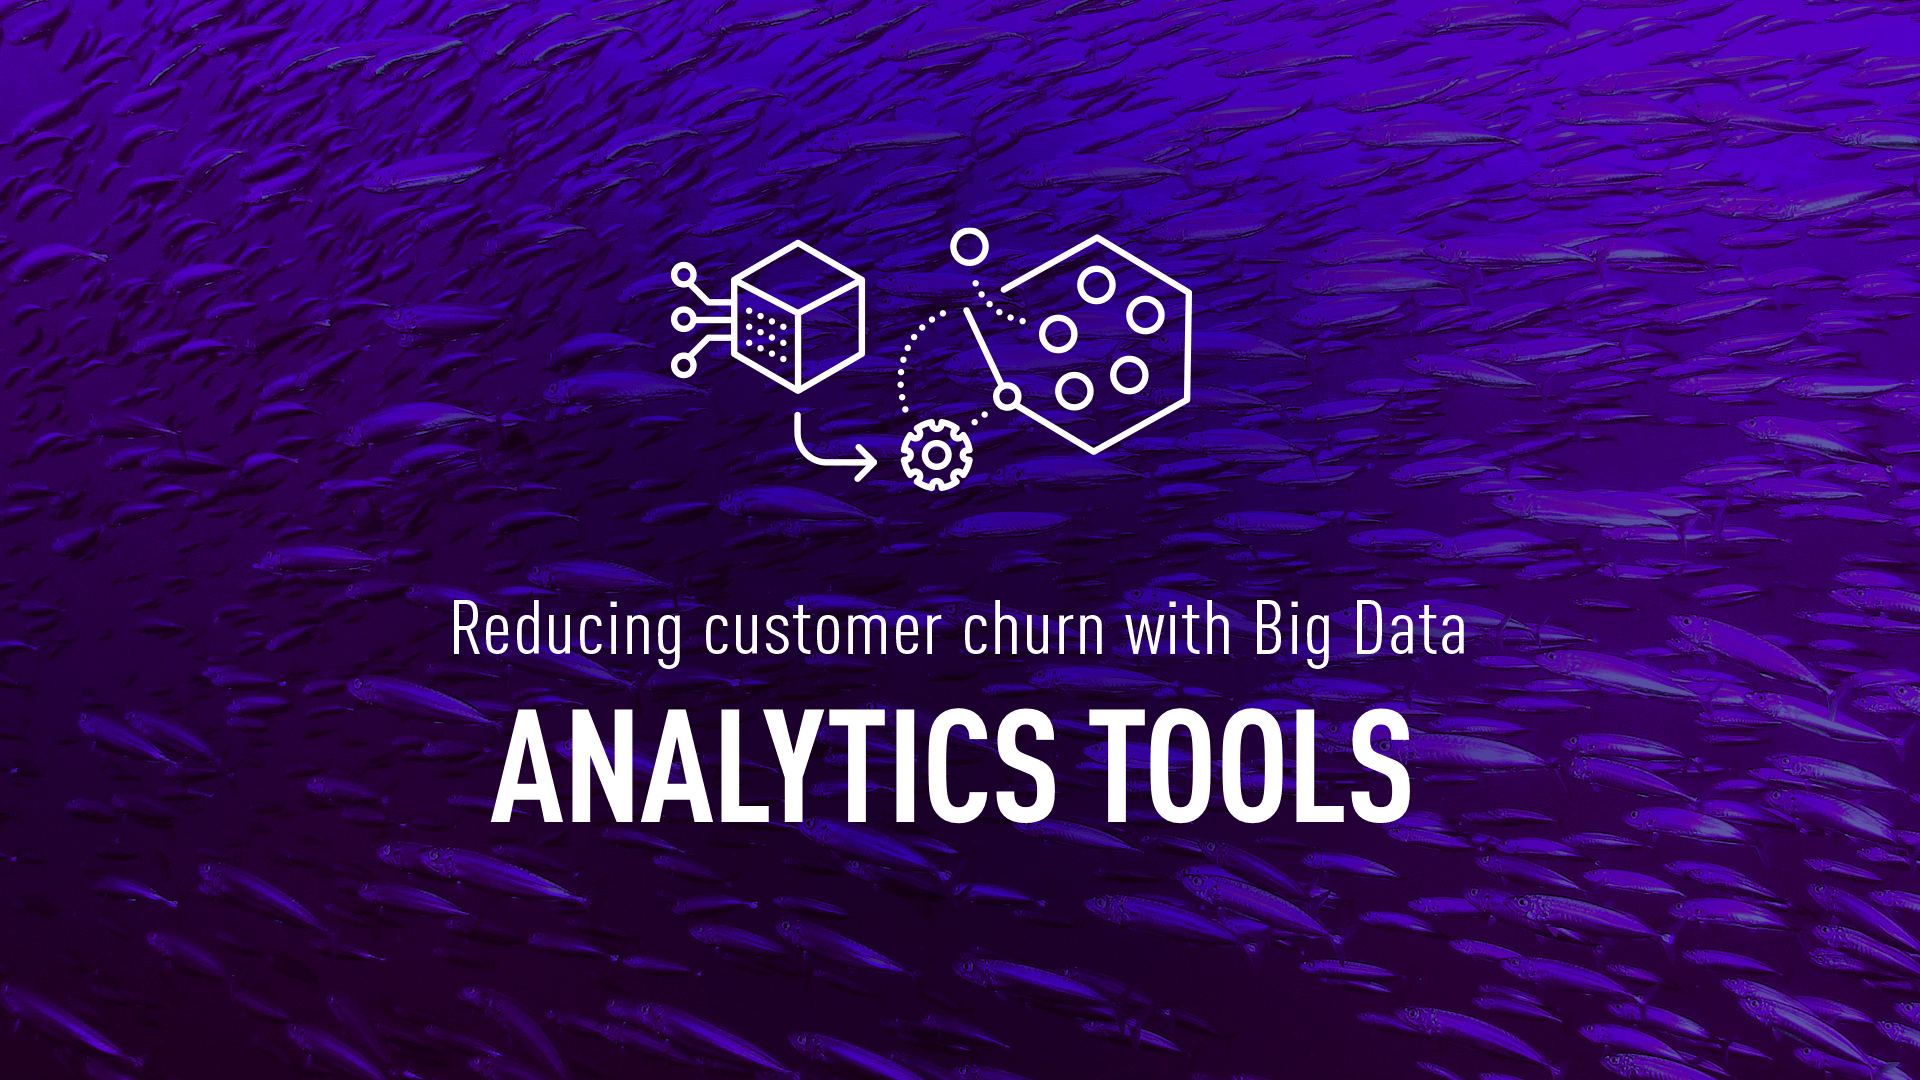 Reducing customer churn with Big Data analytics tools